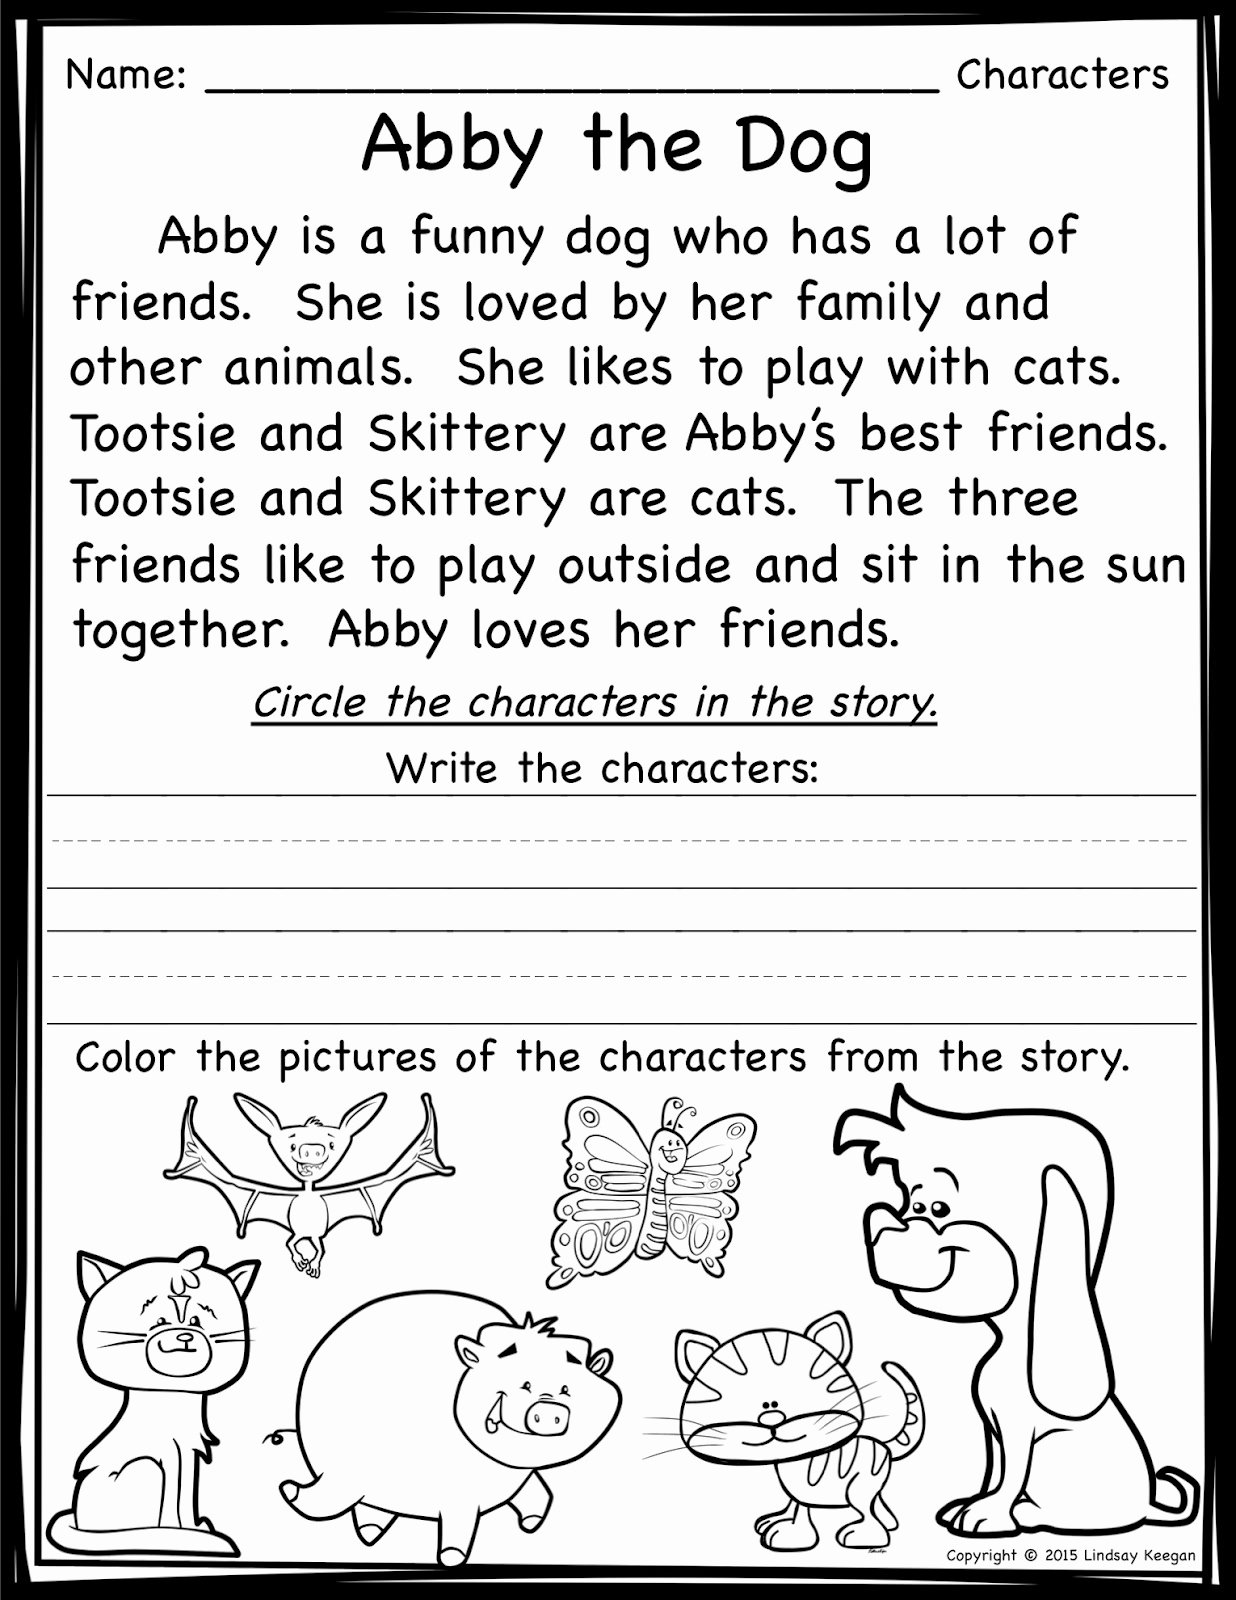 hight resolution of Elements Of A Folktale Worksheet   Printable Worksheets and Activities for  Teachers